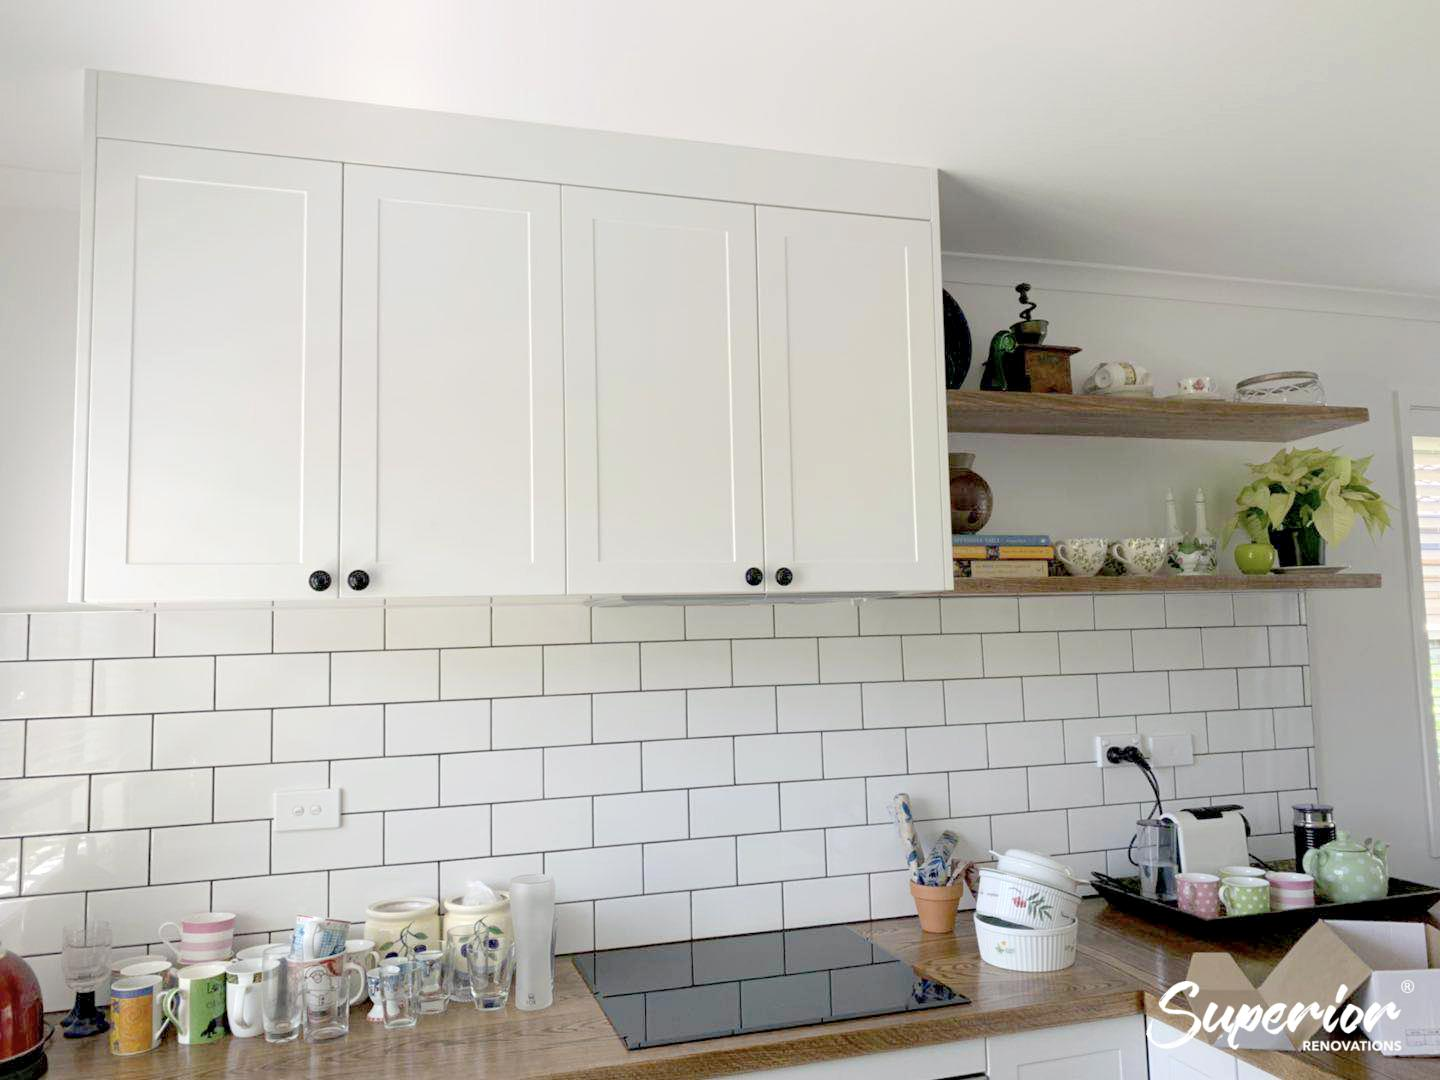 Ambury-Rd, Kitchen Renovation, Bathroom Renovation, House Renovation Auckland